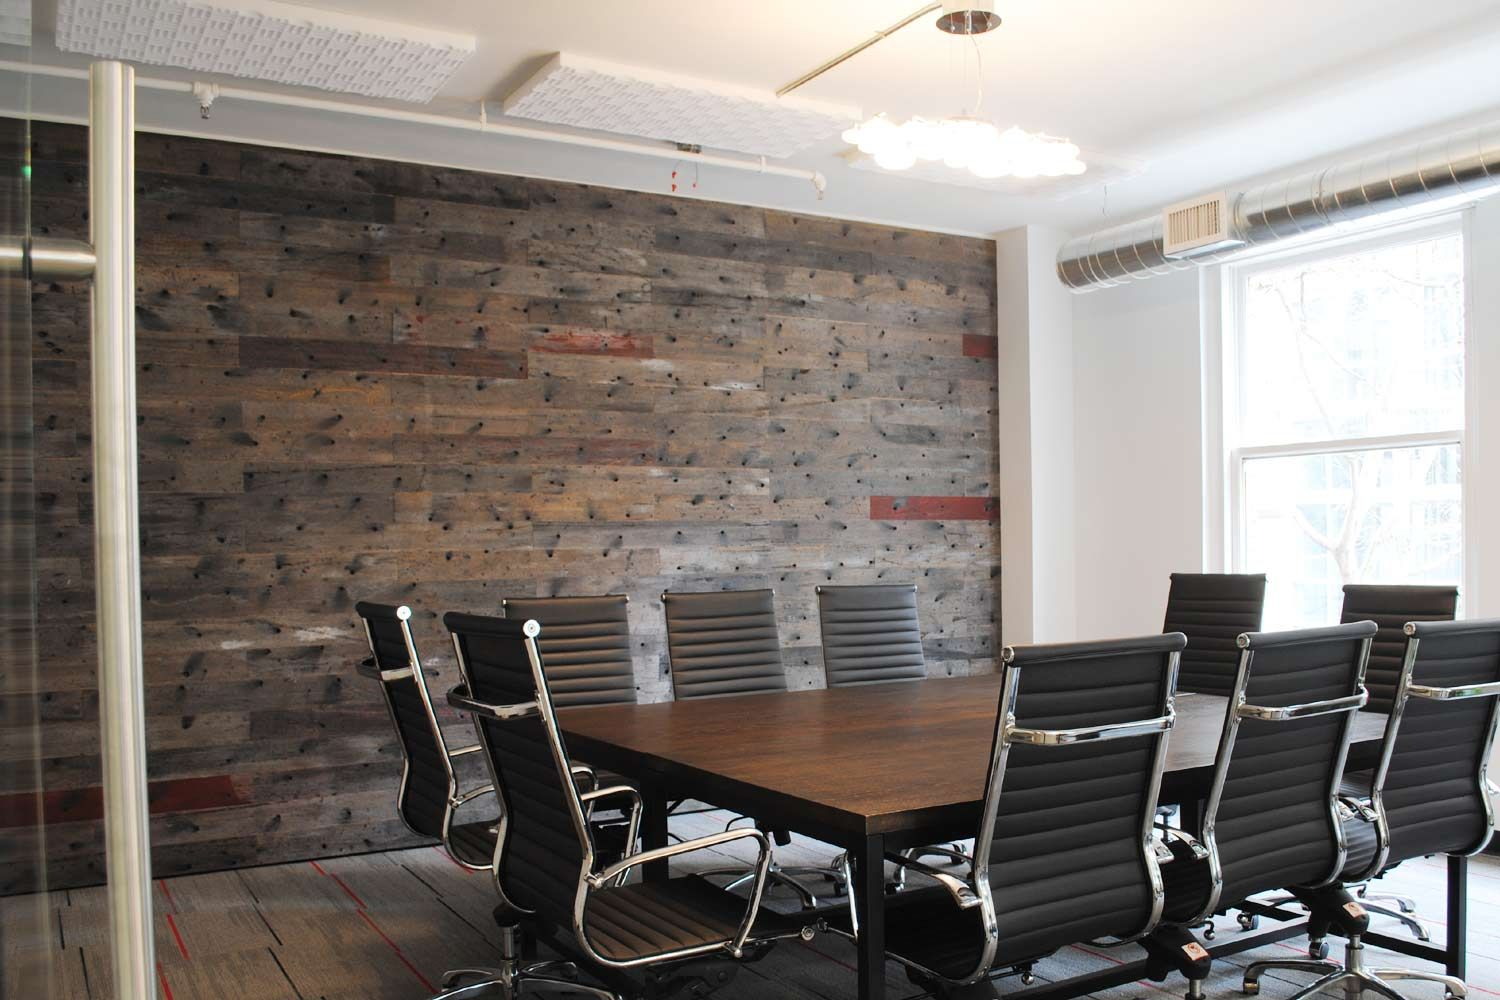 Viridian Reclaimed Wood - Route 66 Truck Deck Paneling - Viridian Reclaimed Wood - Route 66 Truck Deck Paneling Walls